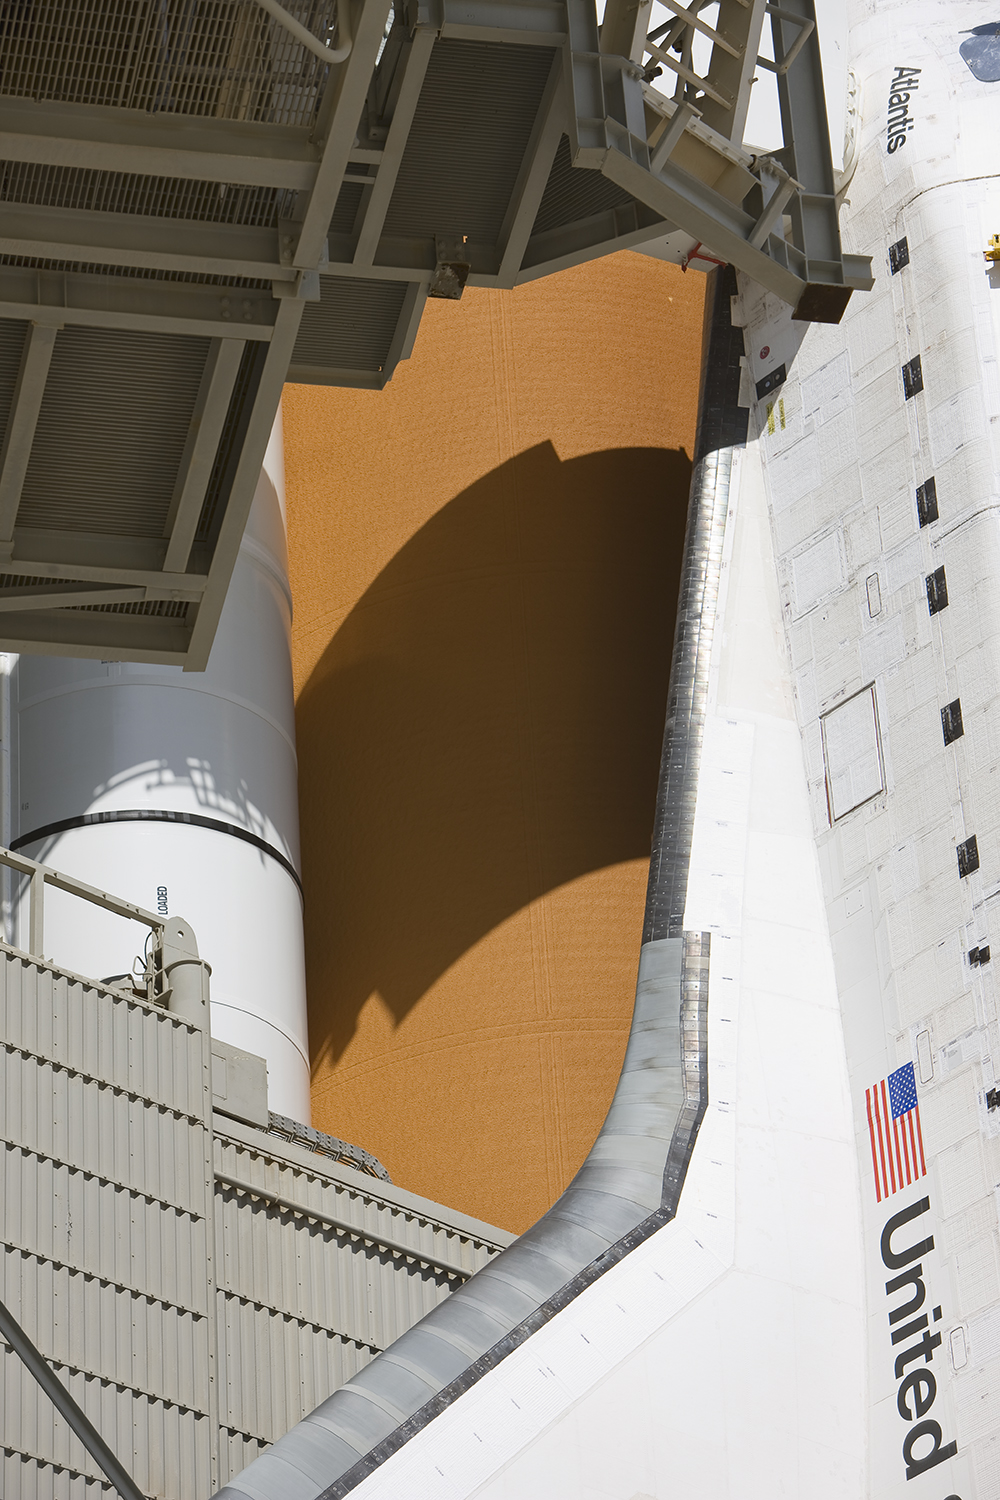 Detail, Space Shuttle Atlantis, Pad 39A, STS-125